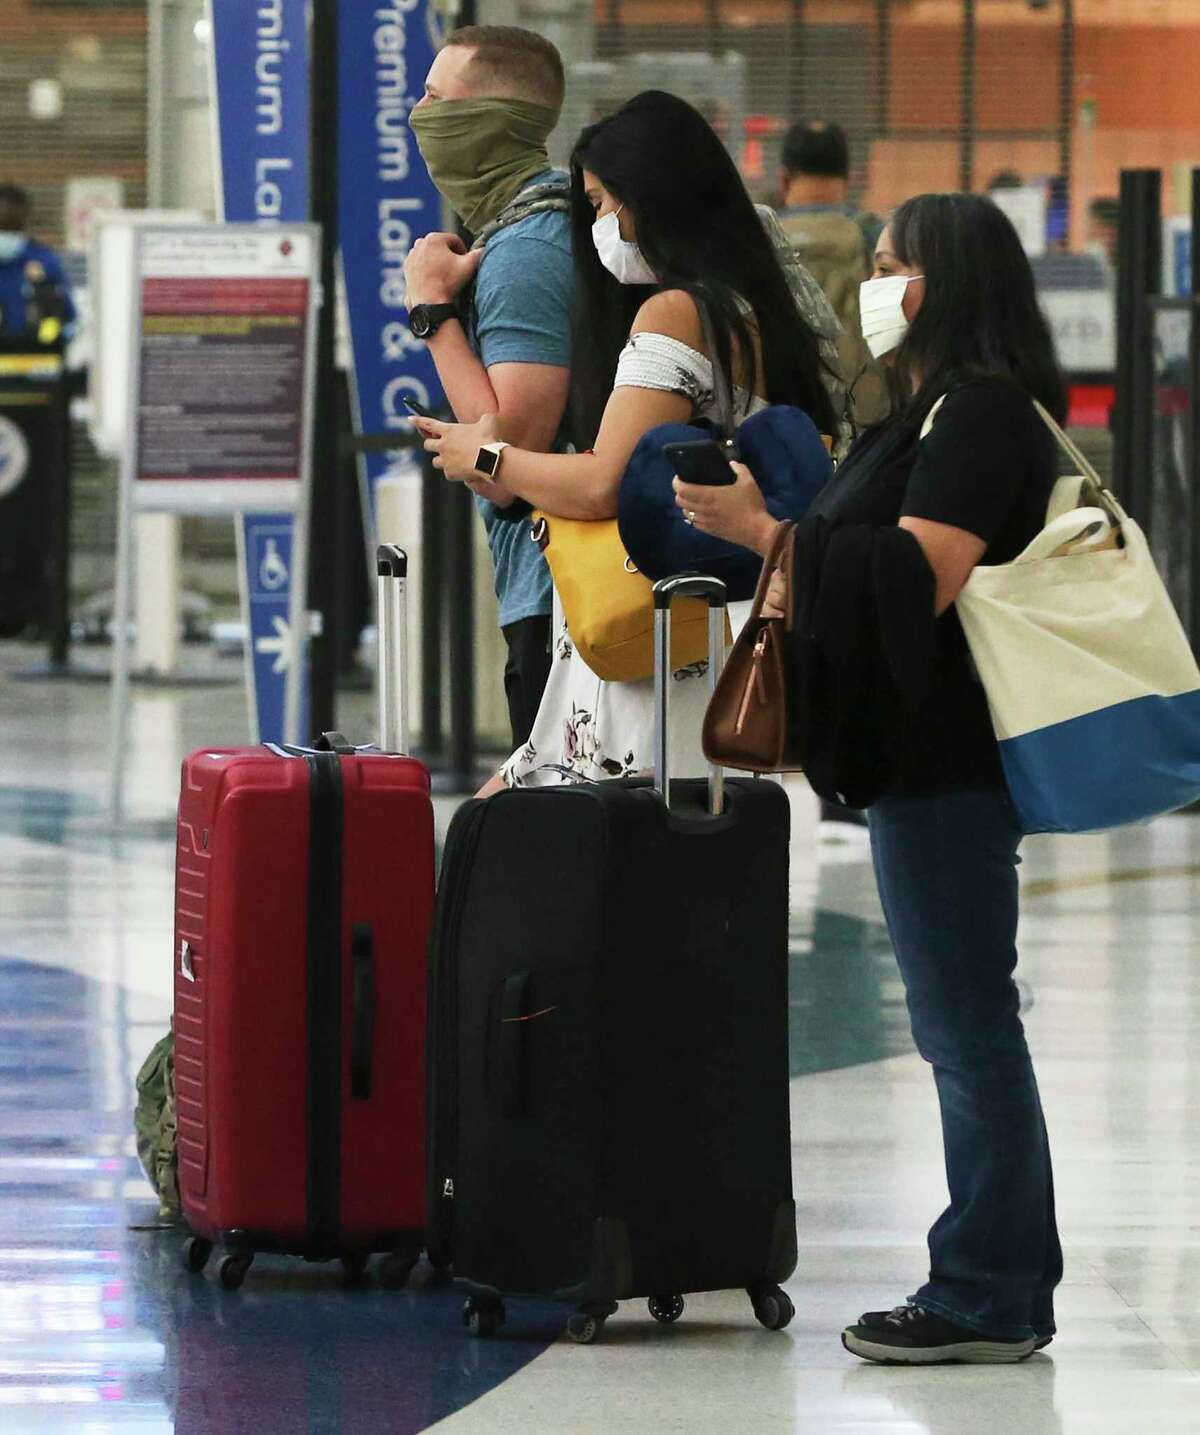 Travelers wait at the San Antonio International Airport in May. But the Austin-Bergstrom International Airport, just up the road, may keep San Antonio's airport from spreading its wings.